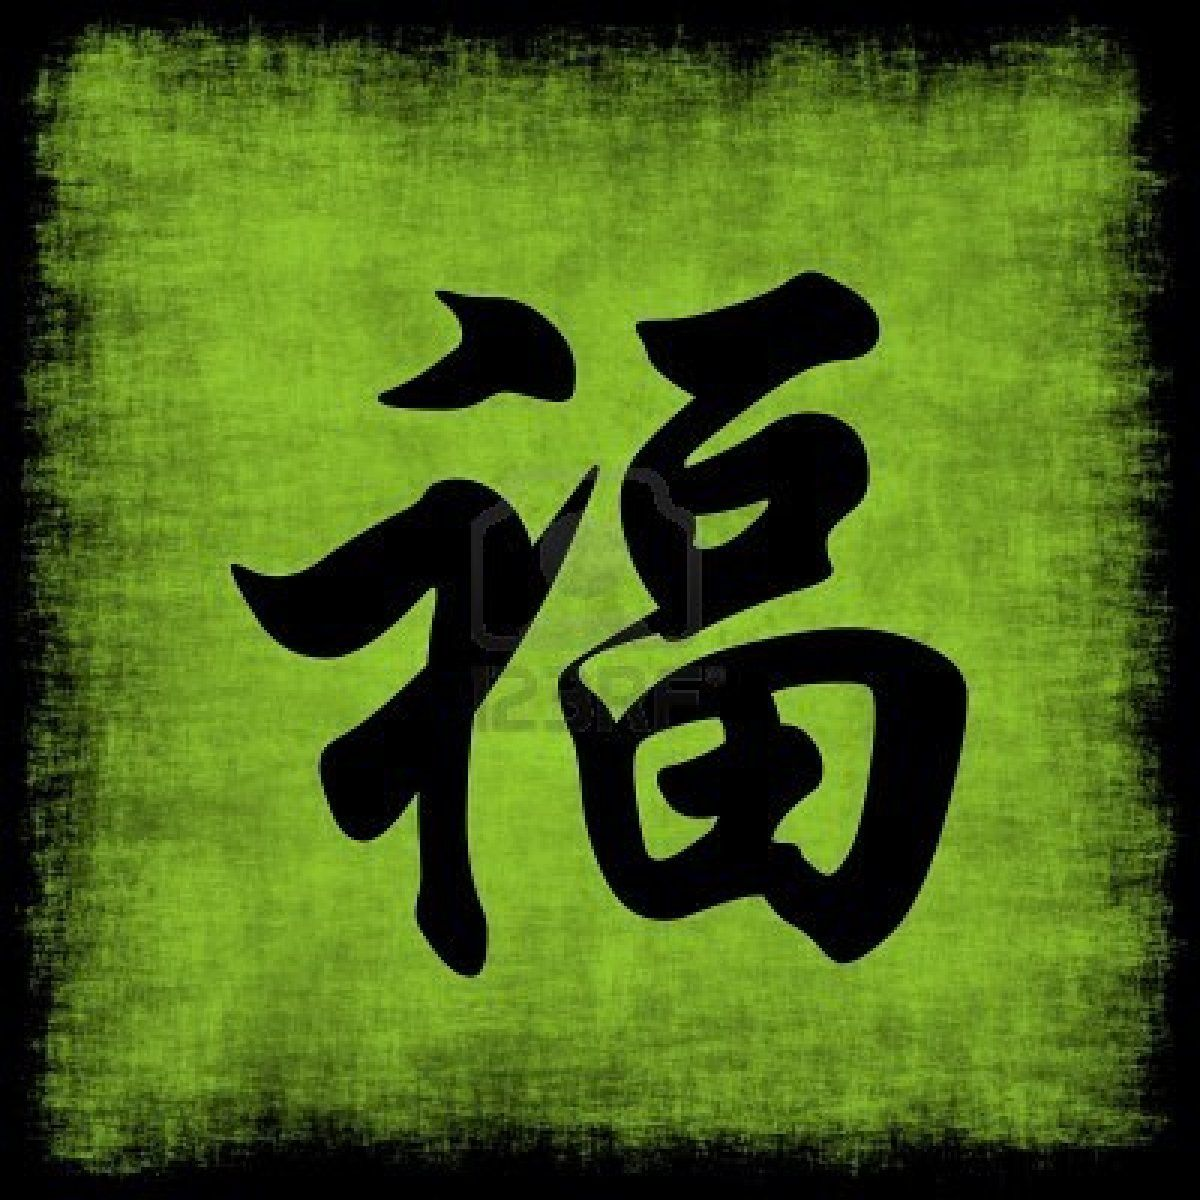 I doubt this means wealth im sure it means gay and something picture of honor chinese calligraphy symbol grunge background set stock photo images and stock photography buycottarizona Images